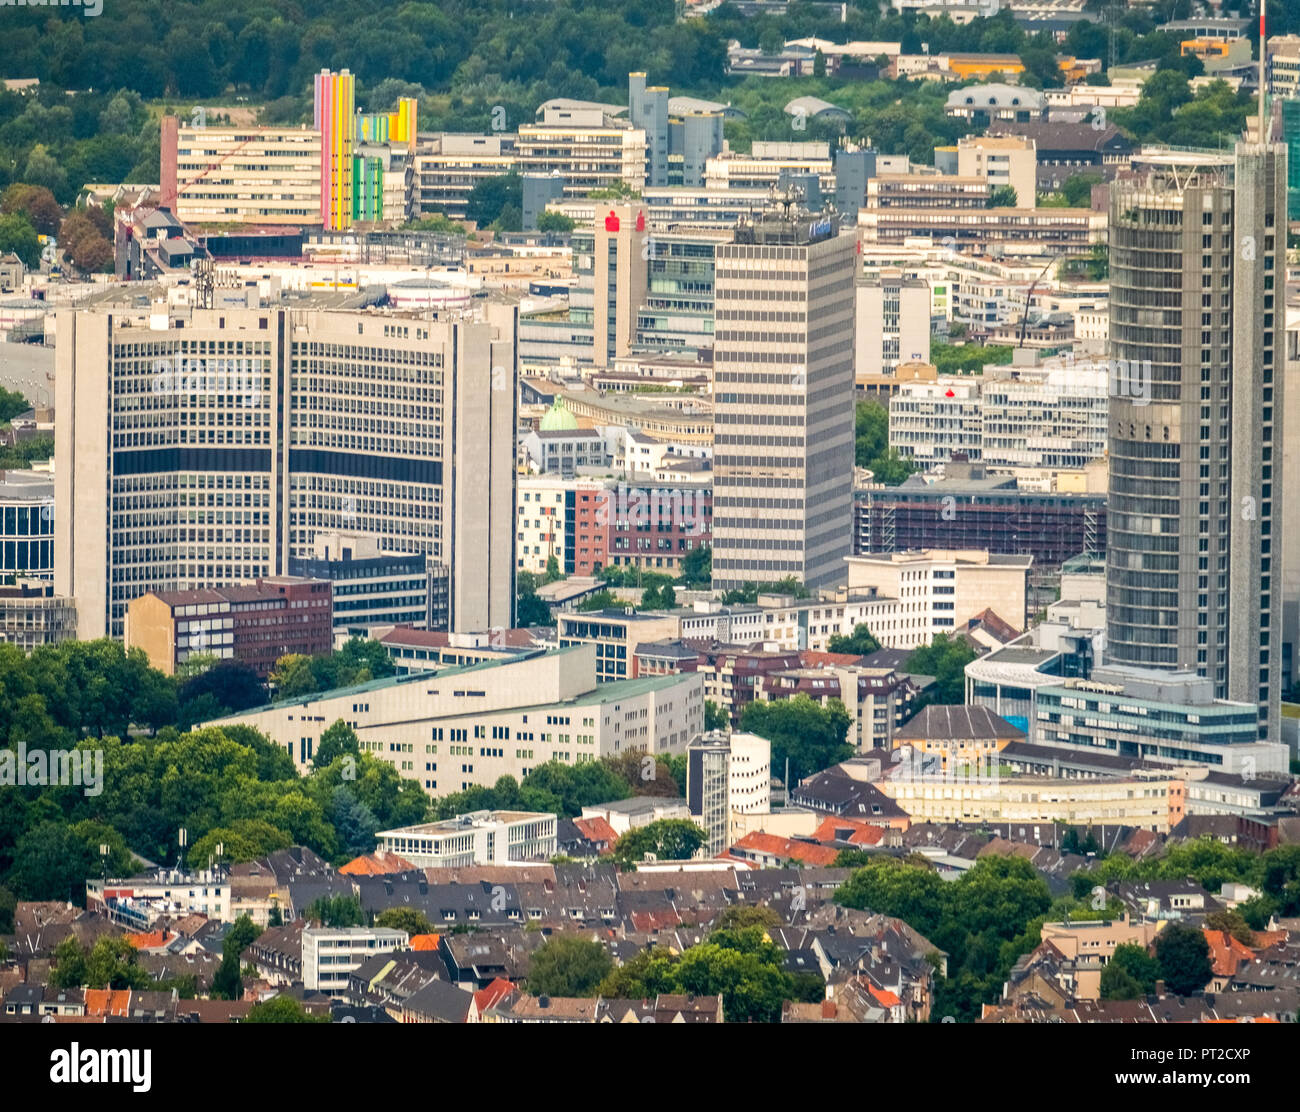 Postbank Dortmund Immobilien Immobilien Stock Photos Immobilien Stock Images Alamy